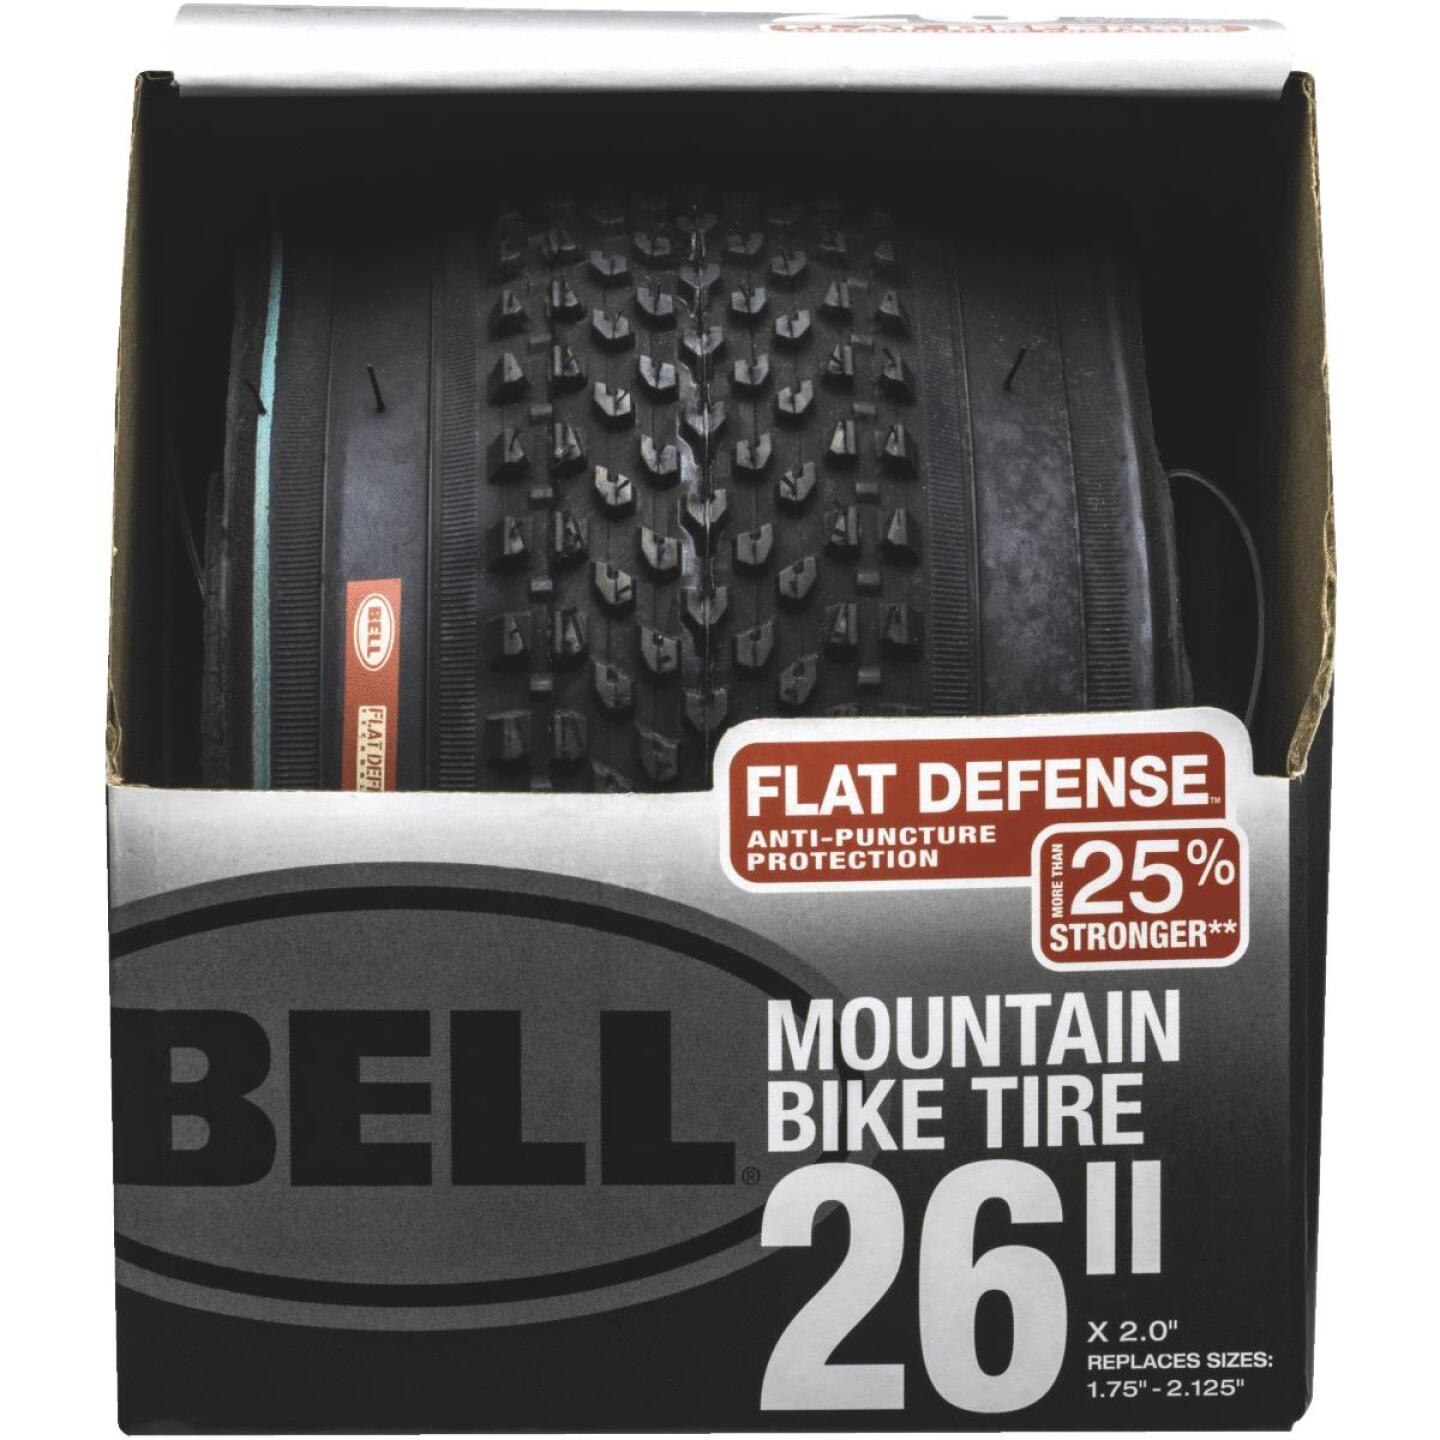 Bell 26 In. Traction Mountain Bike Tire with Flat Defense Image 1